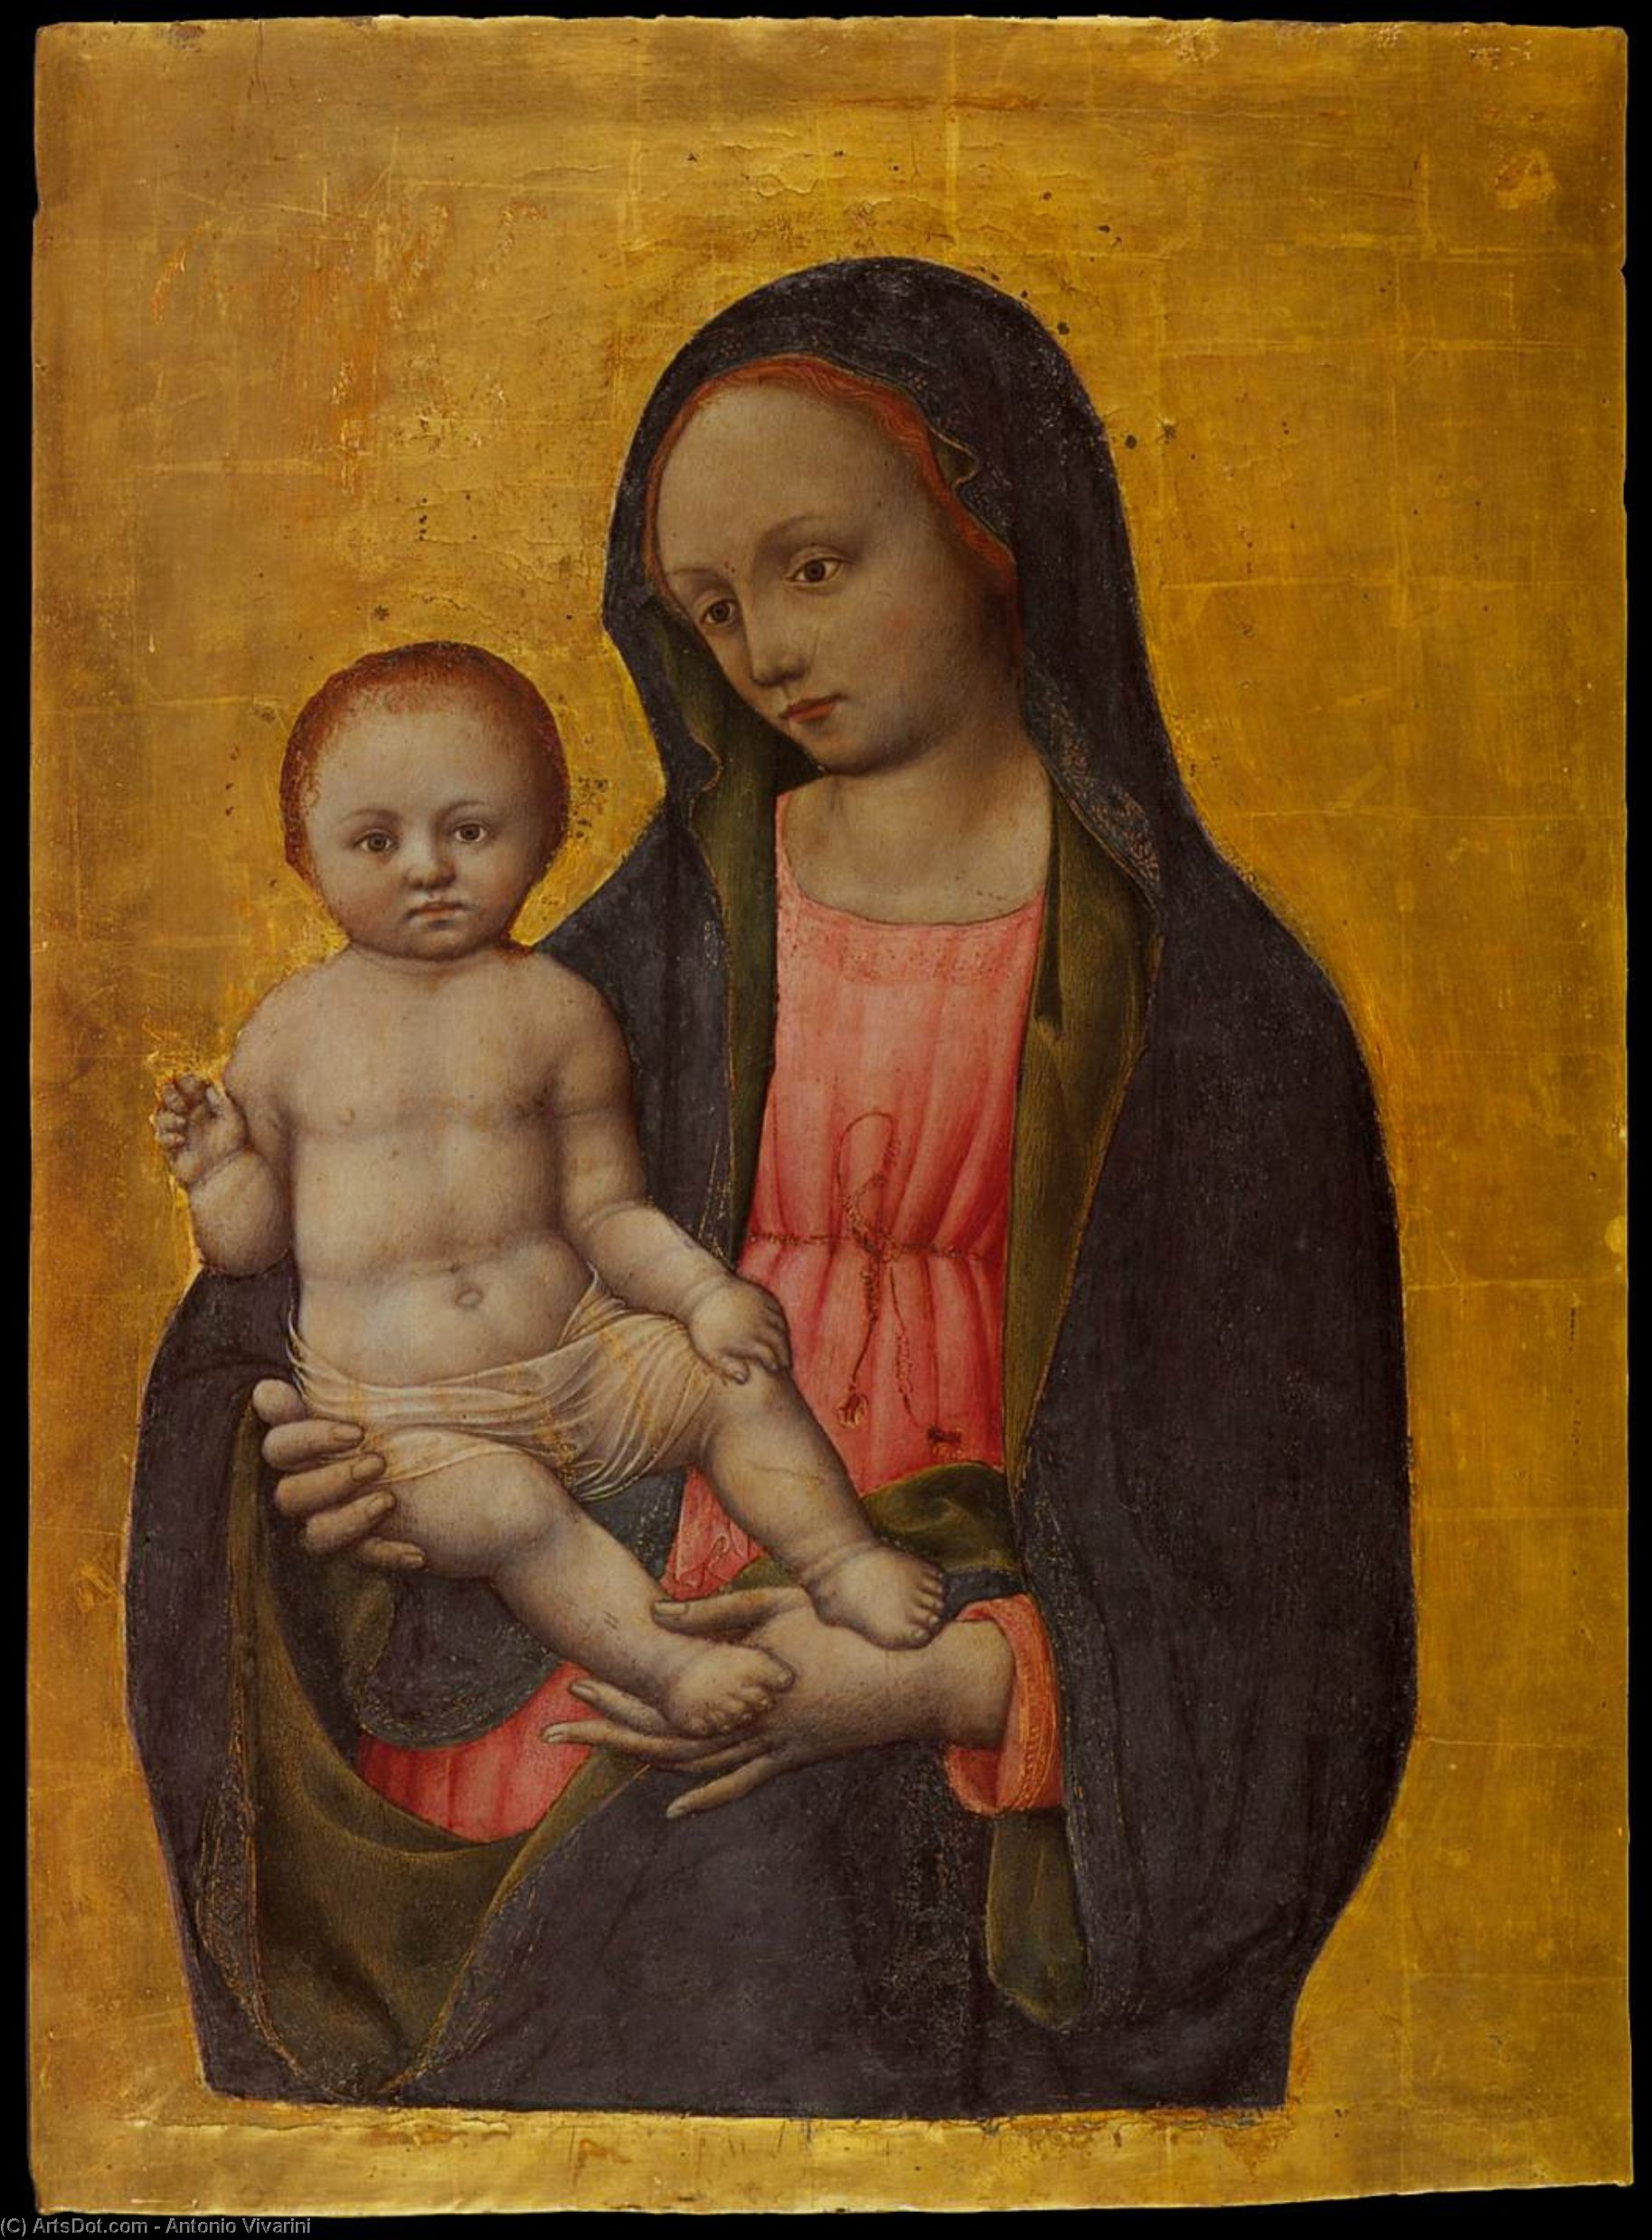 Virgin and Child Blessing, Tempera by Antonio Vivarini (1440-1480, Italy)